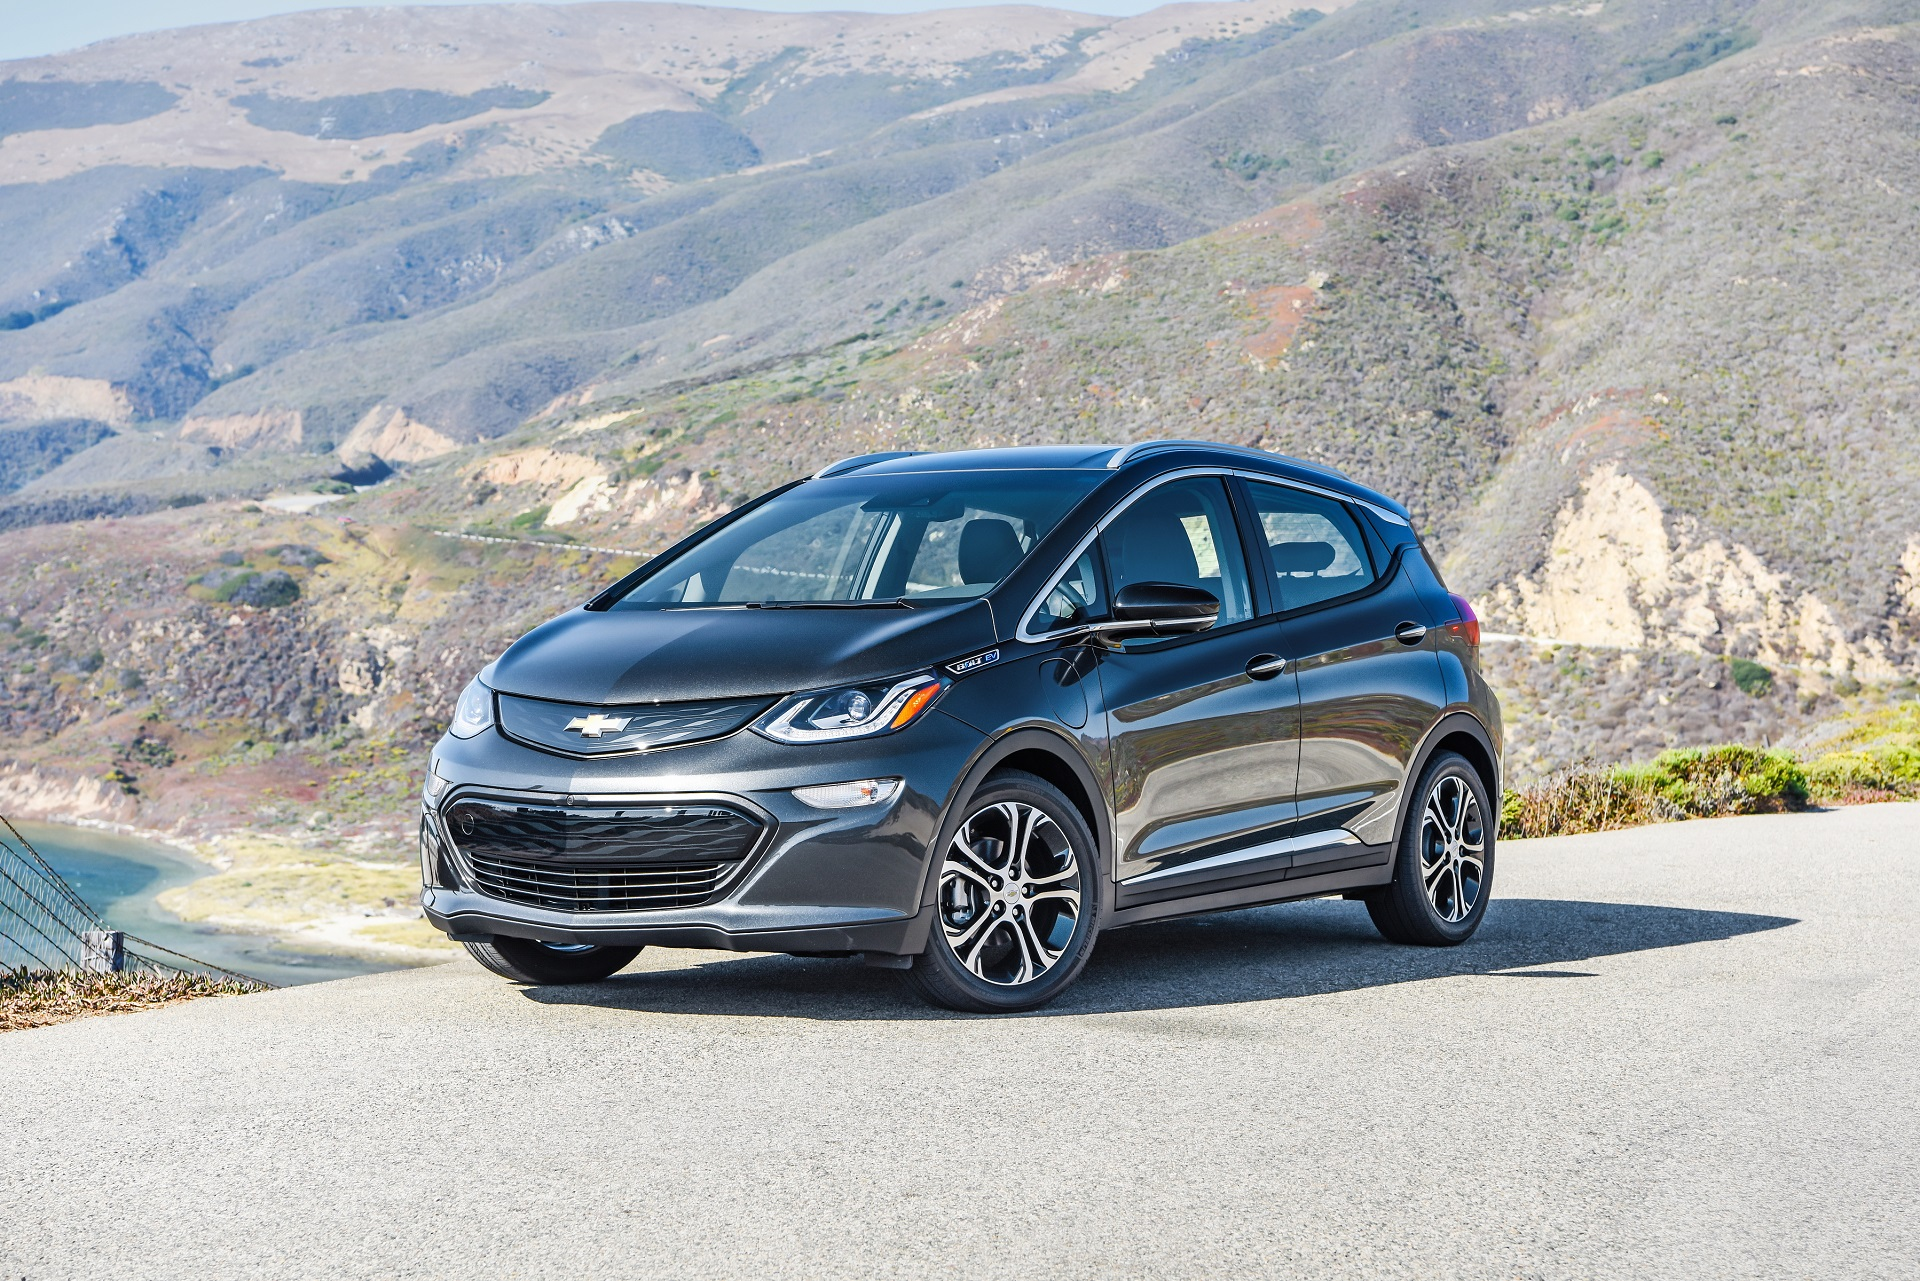 2018 Chevy Bolt EV: Changes, Mileage, Price >> Changing Tires On Chevy Bolt Ev Electric Car Your Range